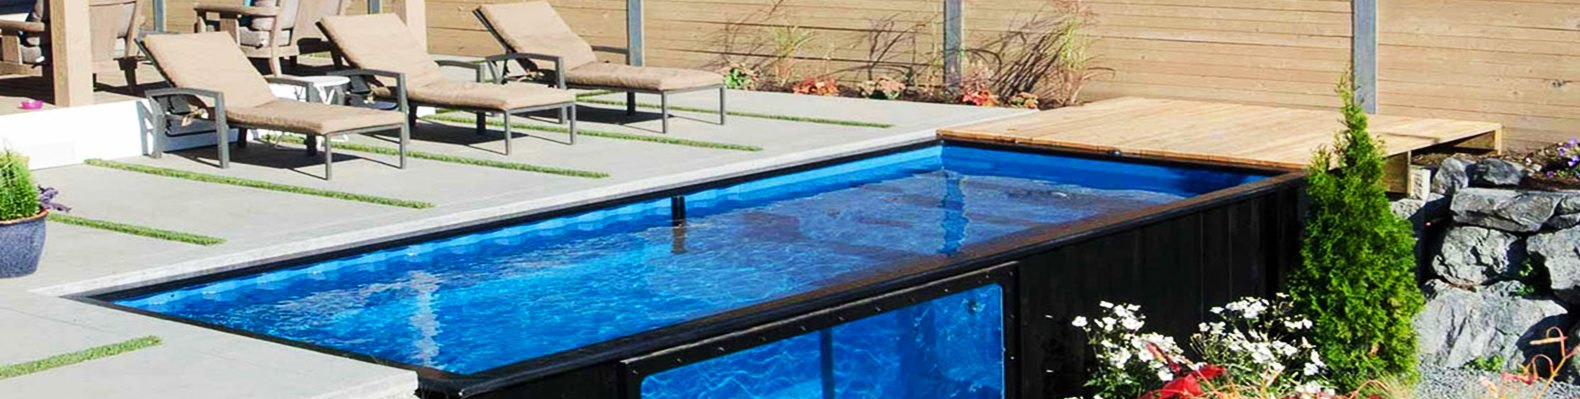 Modpools Turns Shipping Containers Into Amazing Swimming Pools | Inhabitat    Green Design, Innovation, Architecture, Green Building